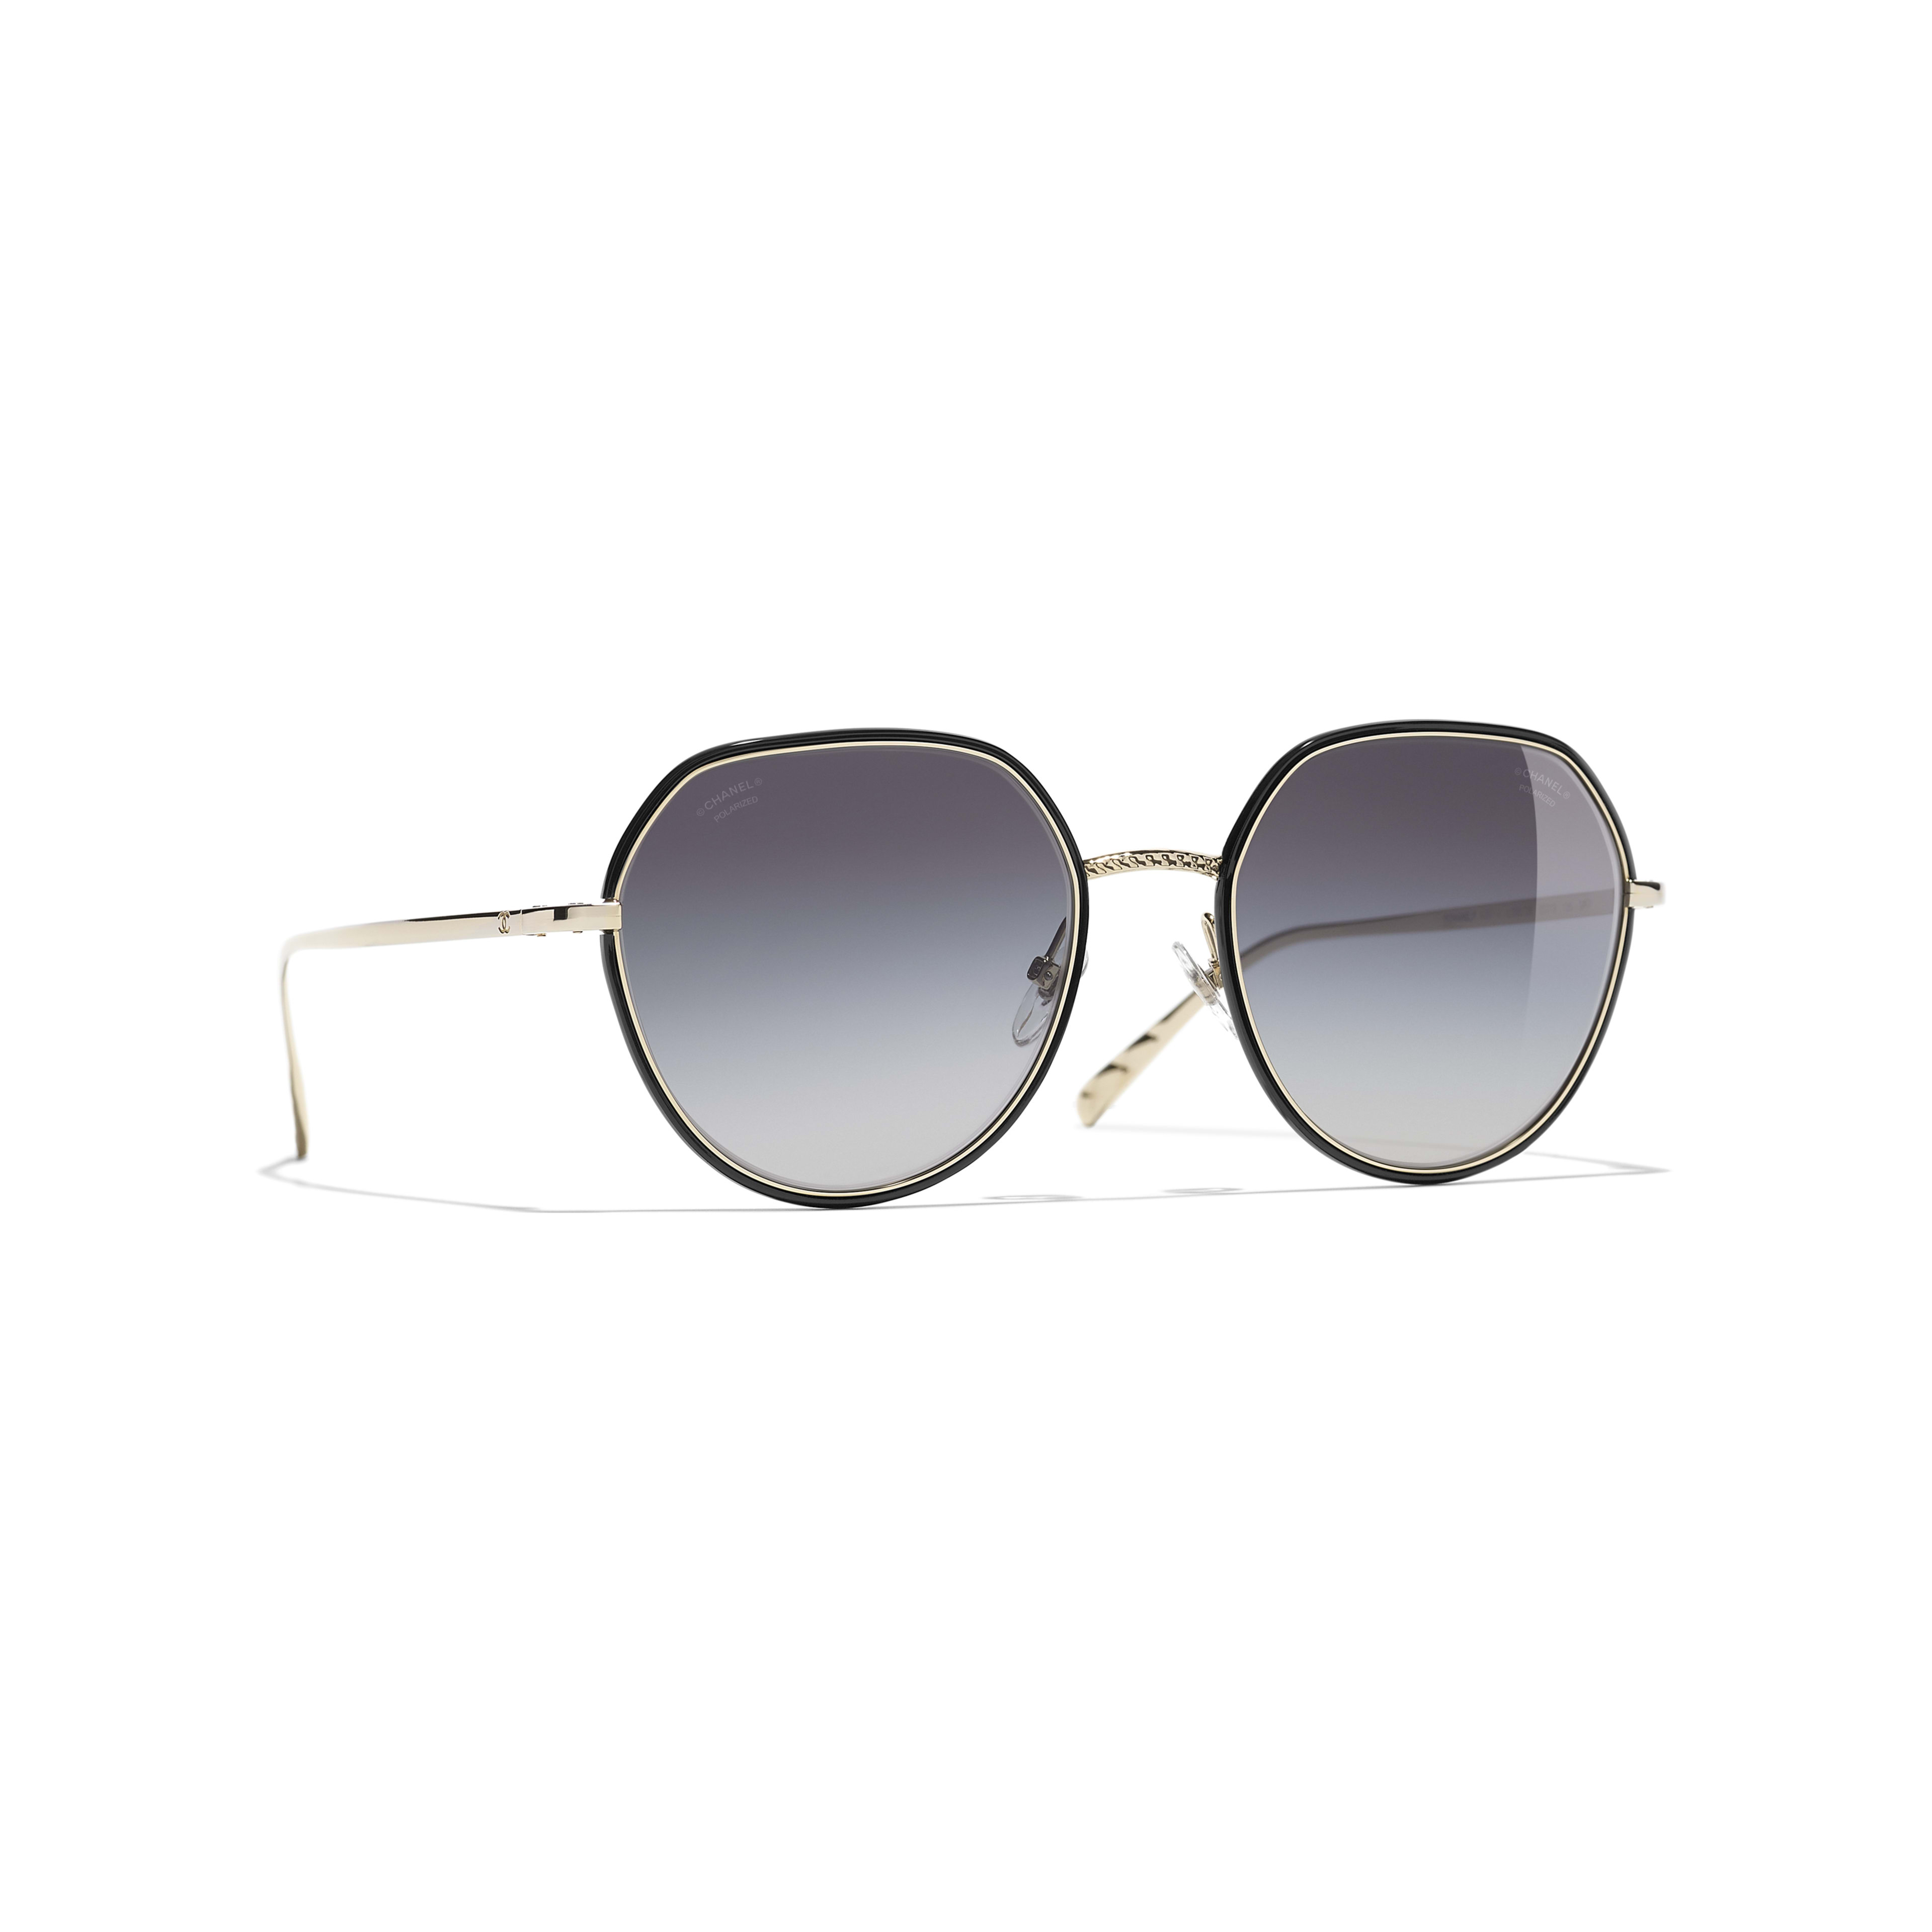 Round Sunglasses - Gold & Black - Metal - Polarized Lenses - Default view - see standard sized version